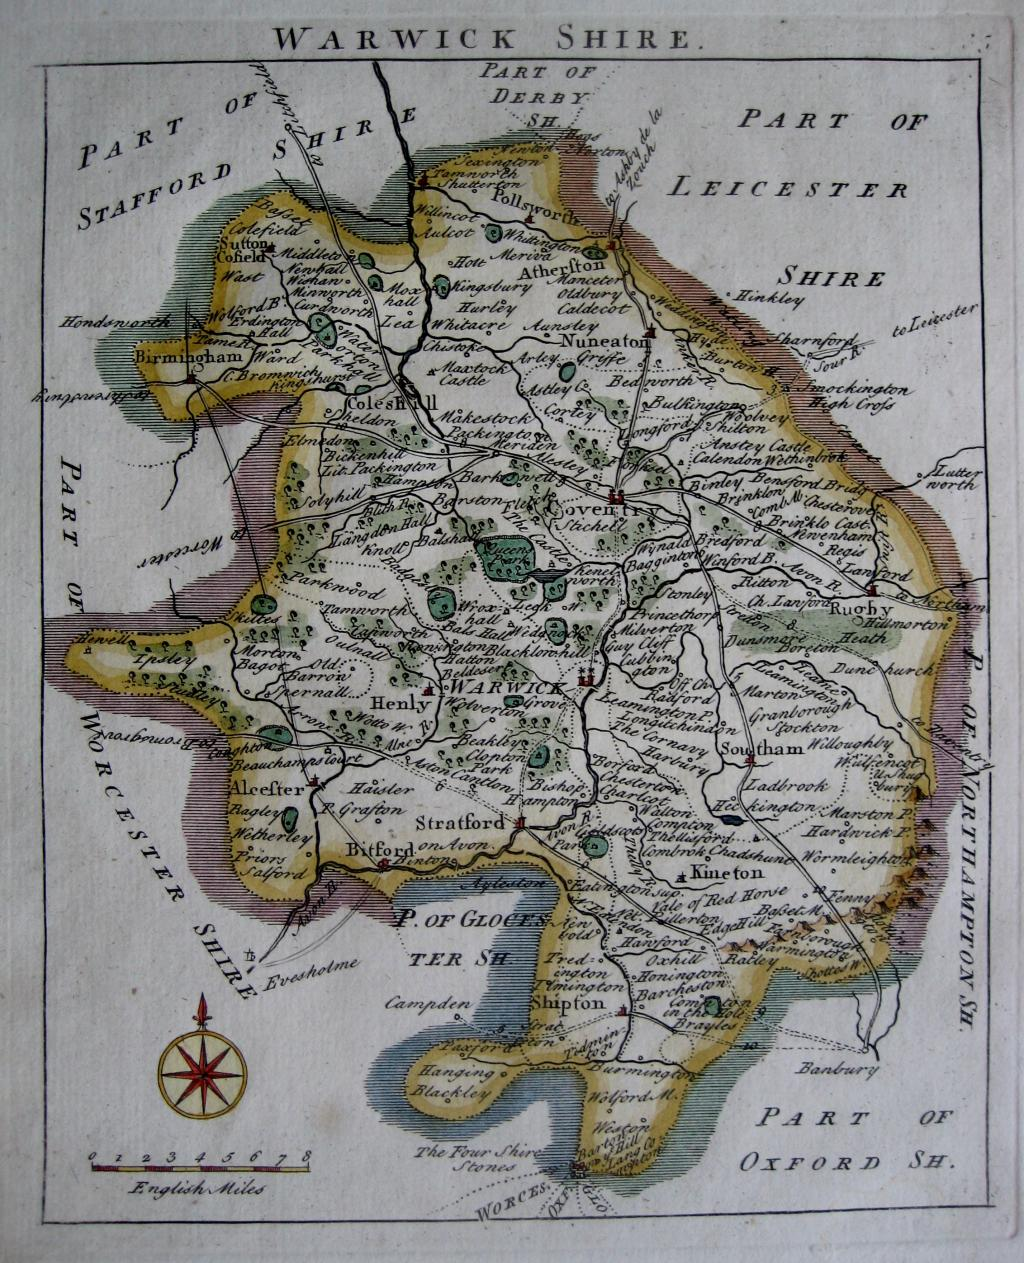 WARWICKSHIRE by JOHN ROCQUE c1753